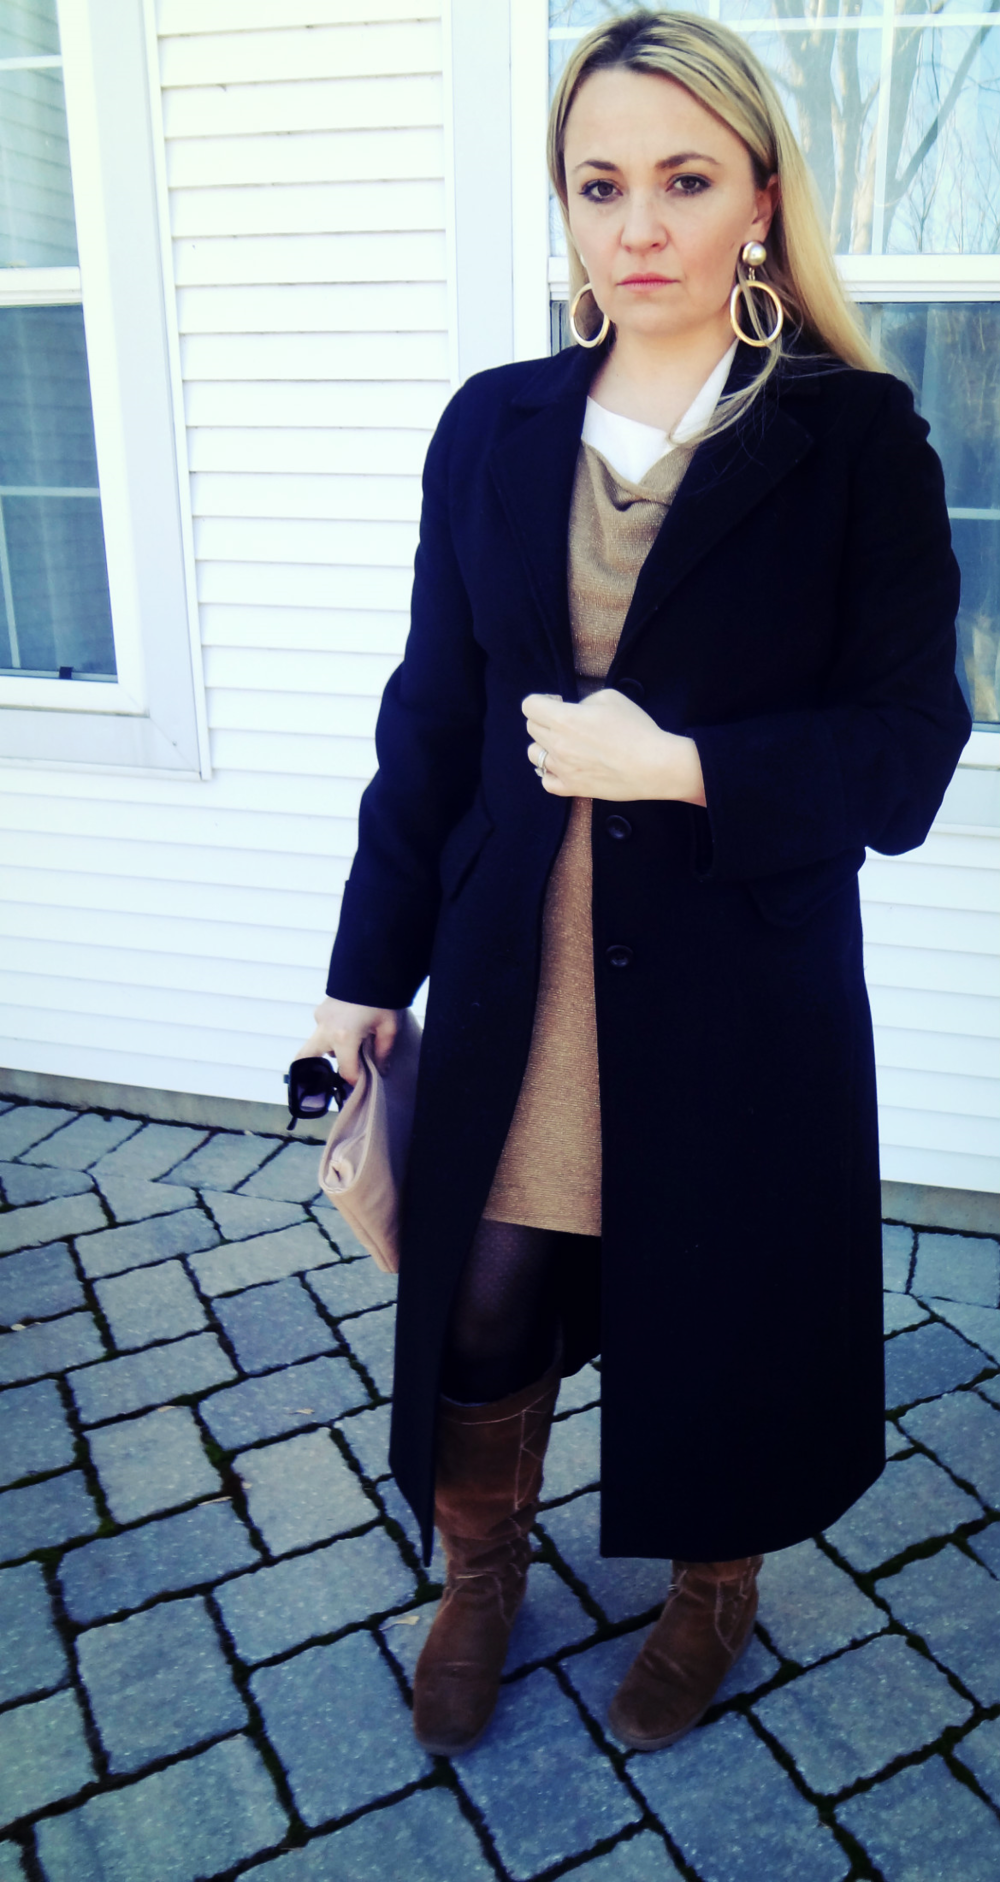 Coat: Miu Miu, Dress: 3.1 Philip Lim, Thights: Hue, Boots: Nine West, Earrings: H&M, Clutch: ASOS, Sunglasses: H&M